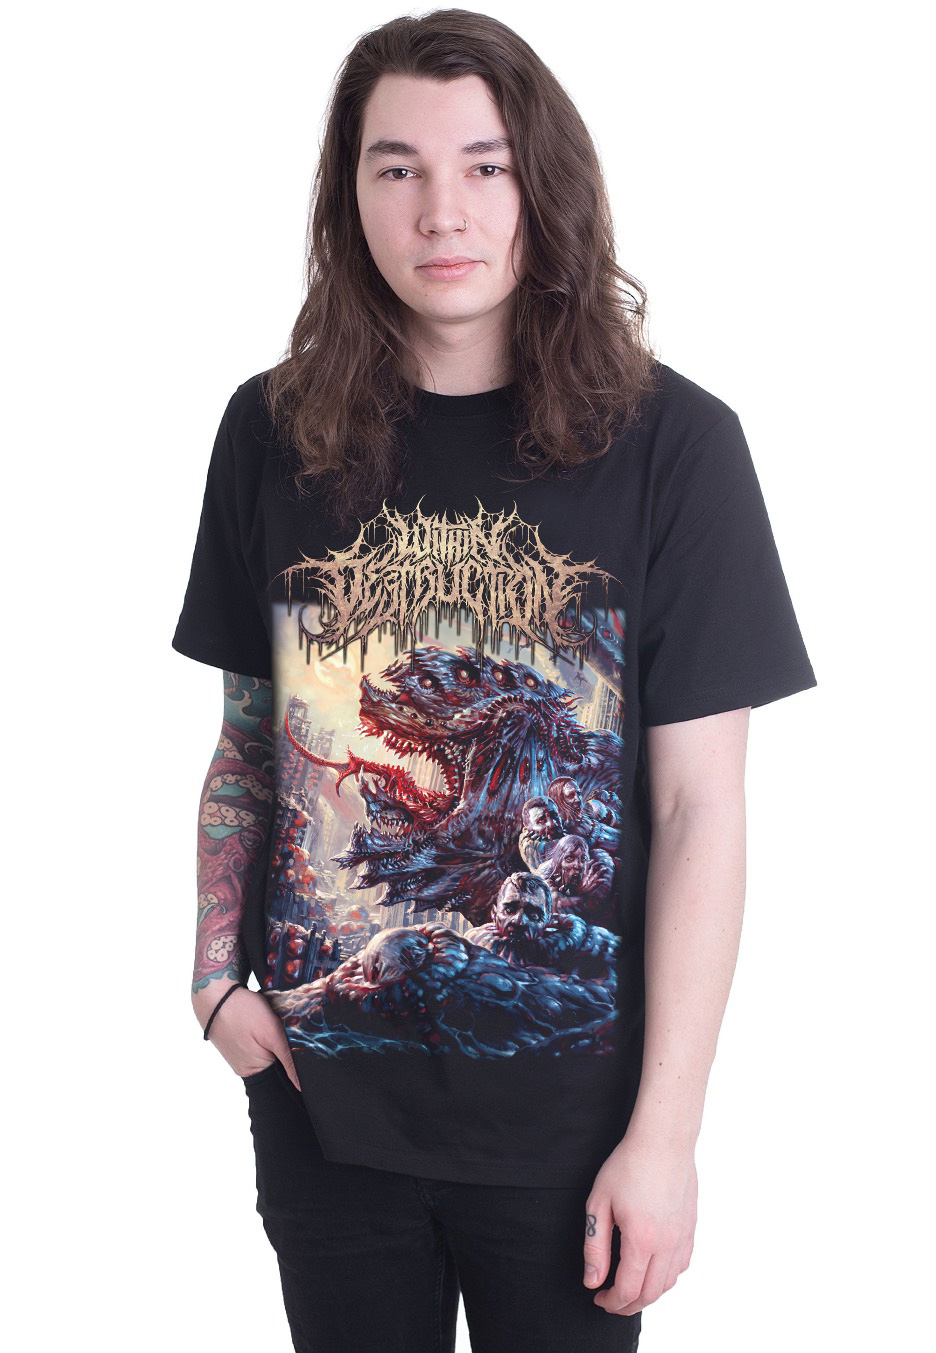 ef709964c59501 Within Destruction - Deathwish Special Pack - T-shirt - Officiell ...